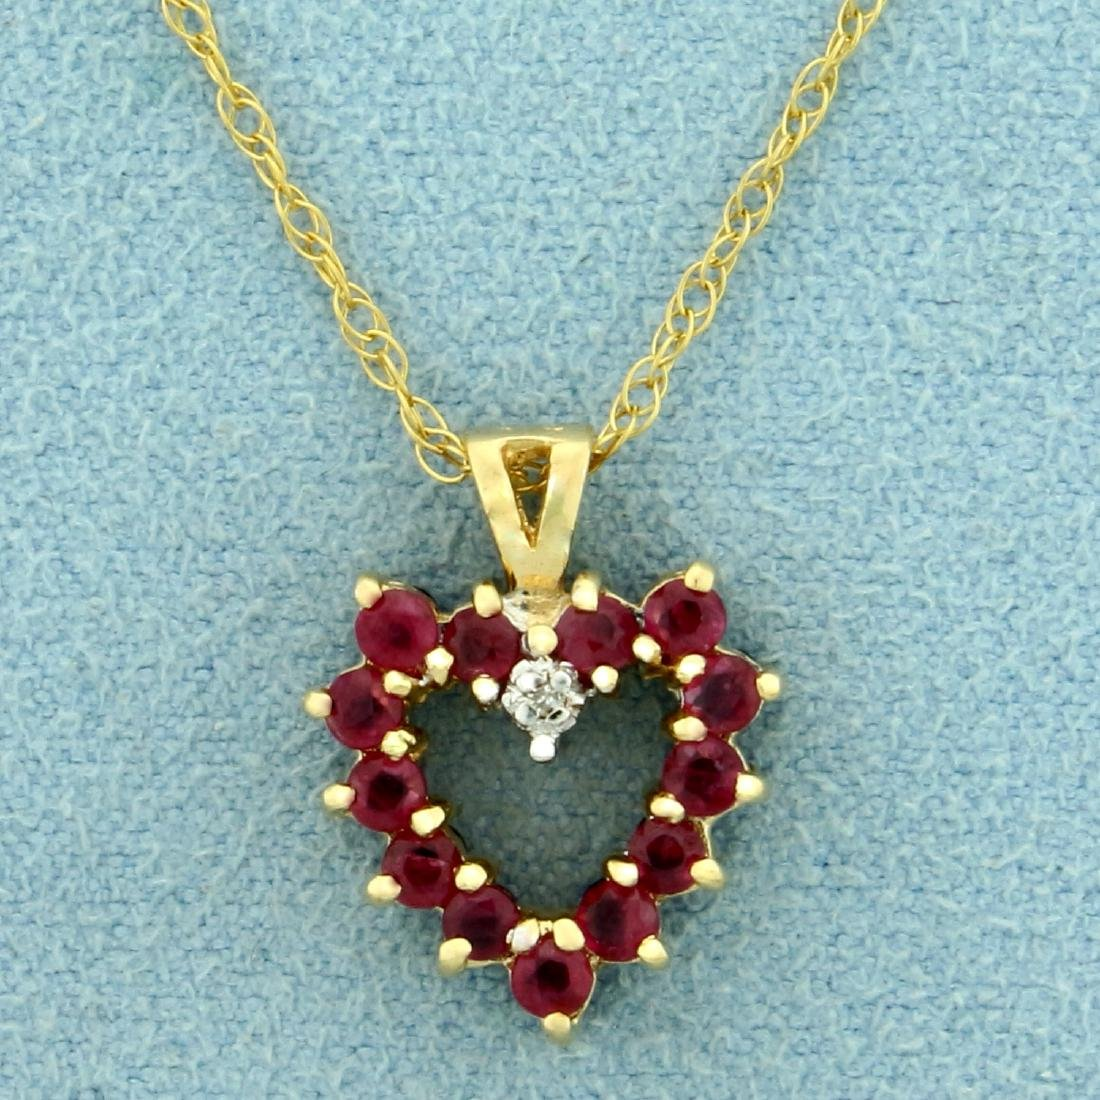 Reversible Ruby and Sapphire Heart Pendant with